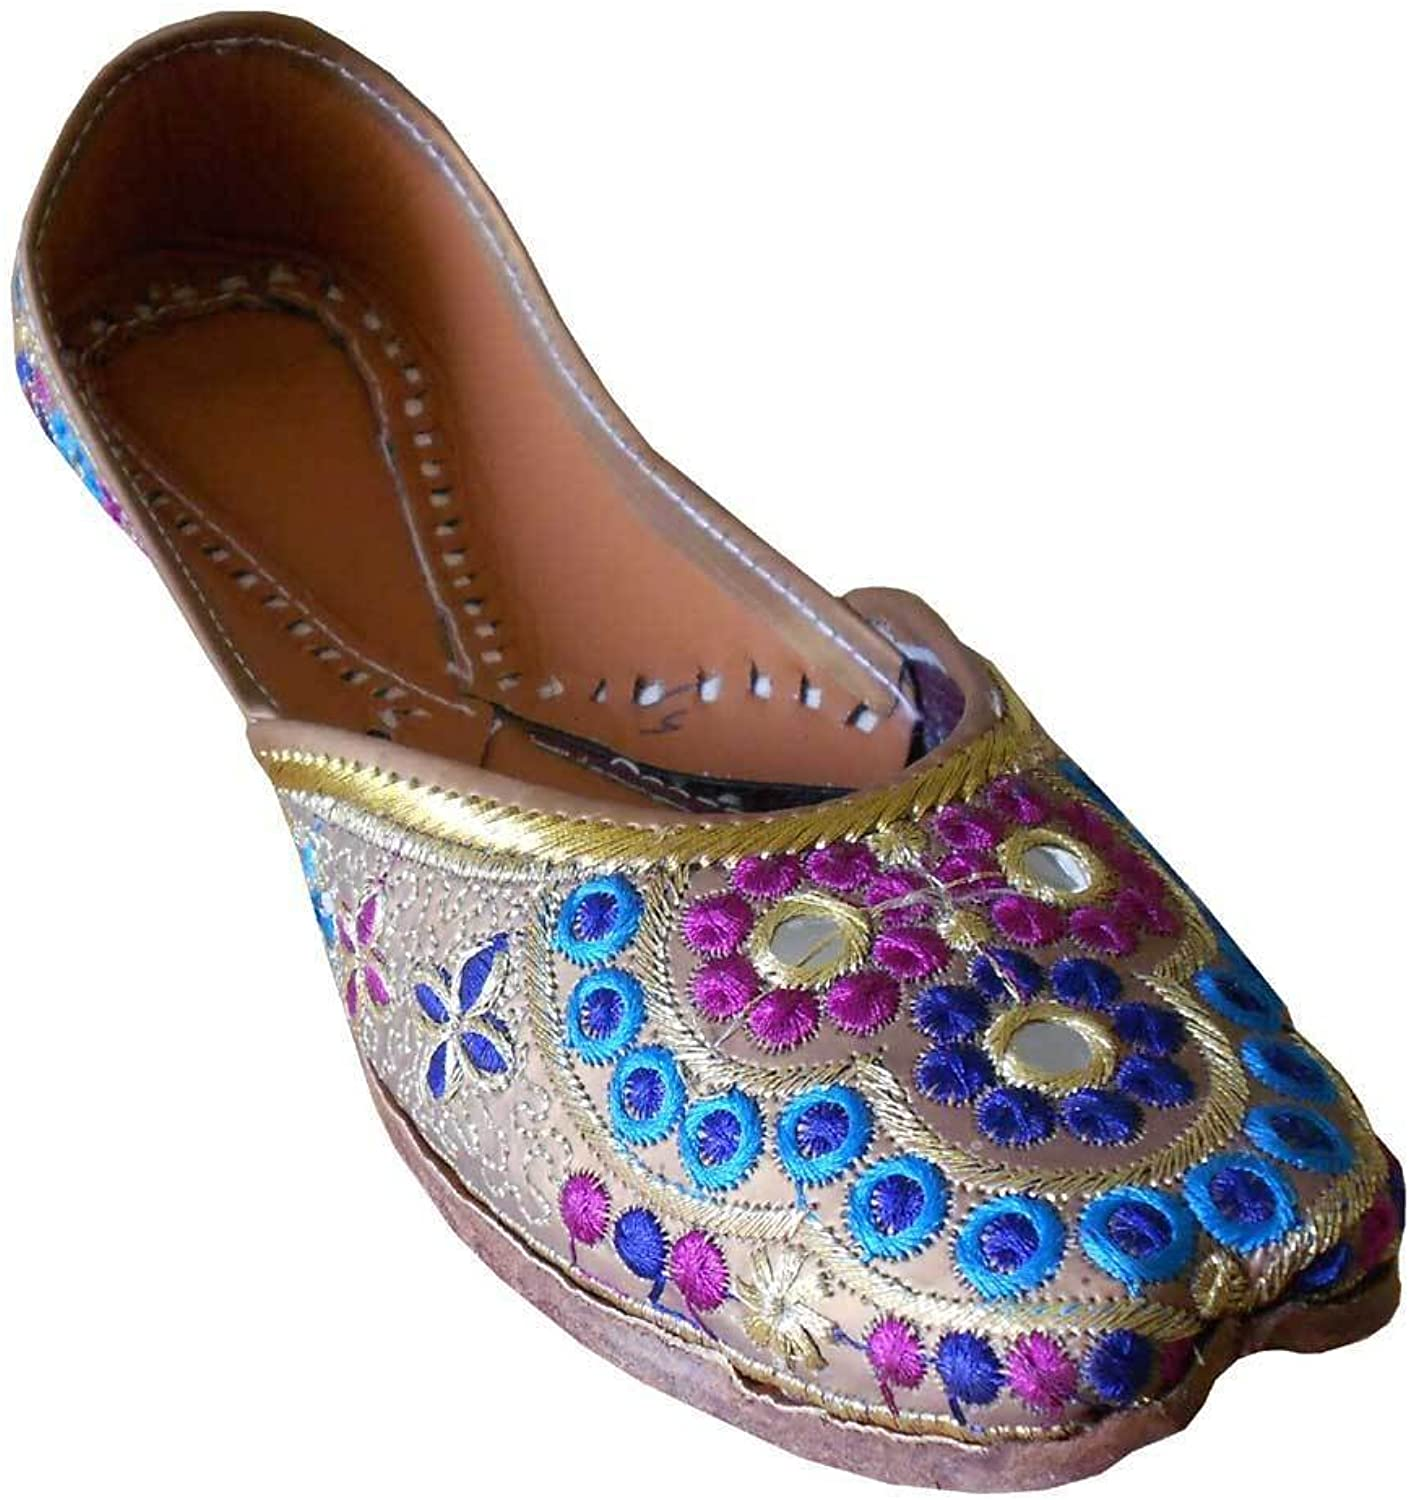 Kalra Creations Mojari Designer Indian Leather Women shoes Ethnic Flip-Flops Handmade Jutti